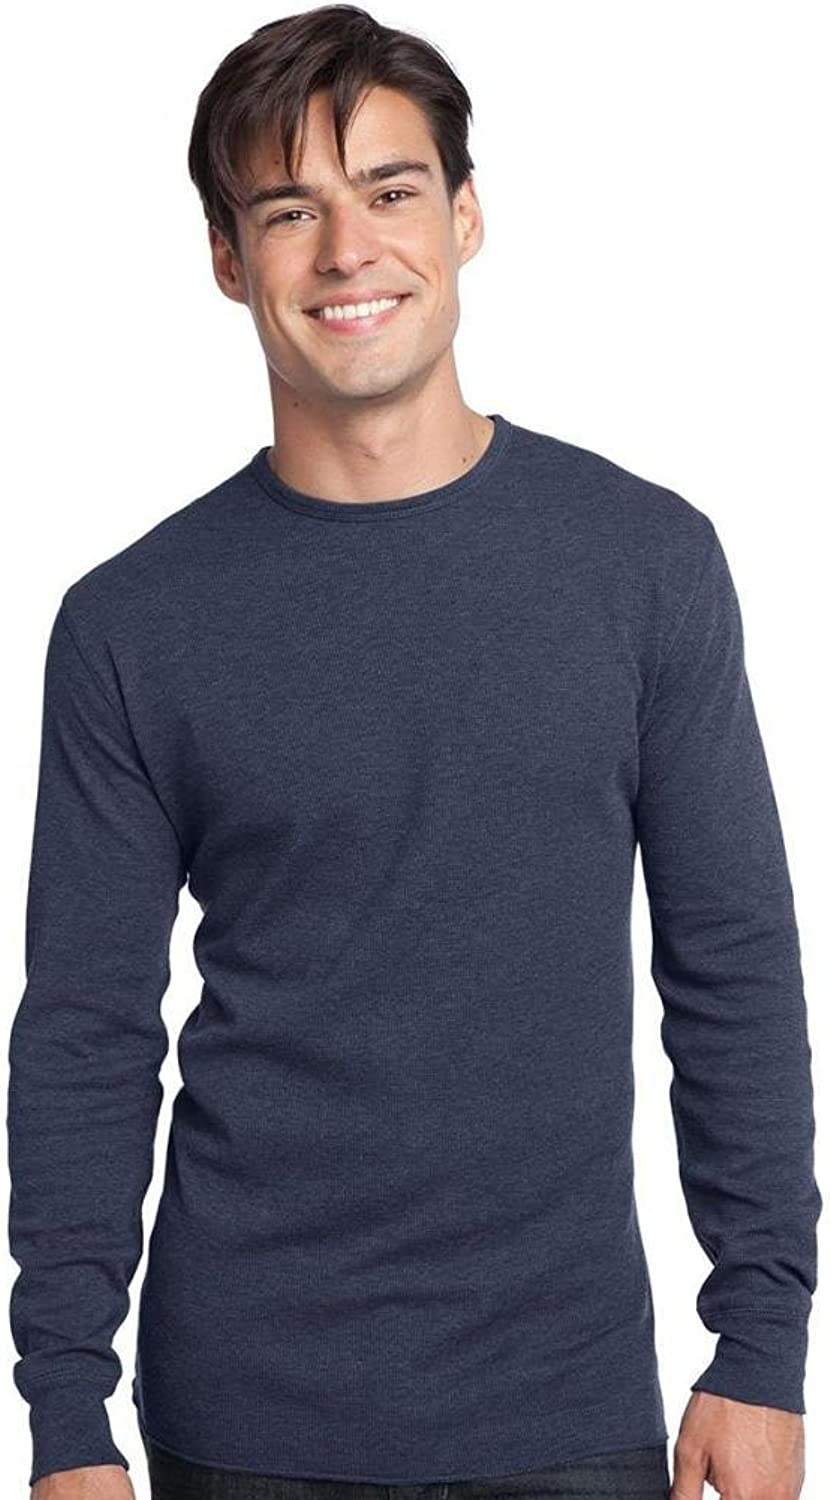 District Threads Men's Long Sleeve Ring Spun Thermal TShirt_Navy Heather